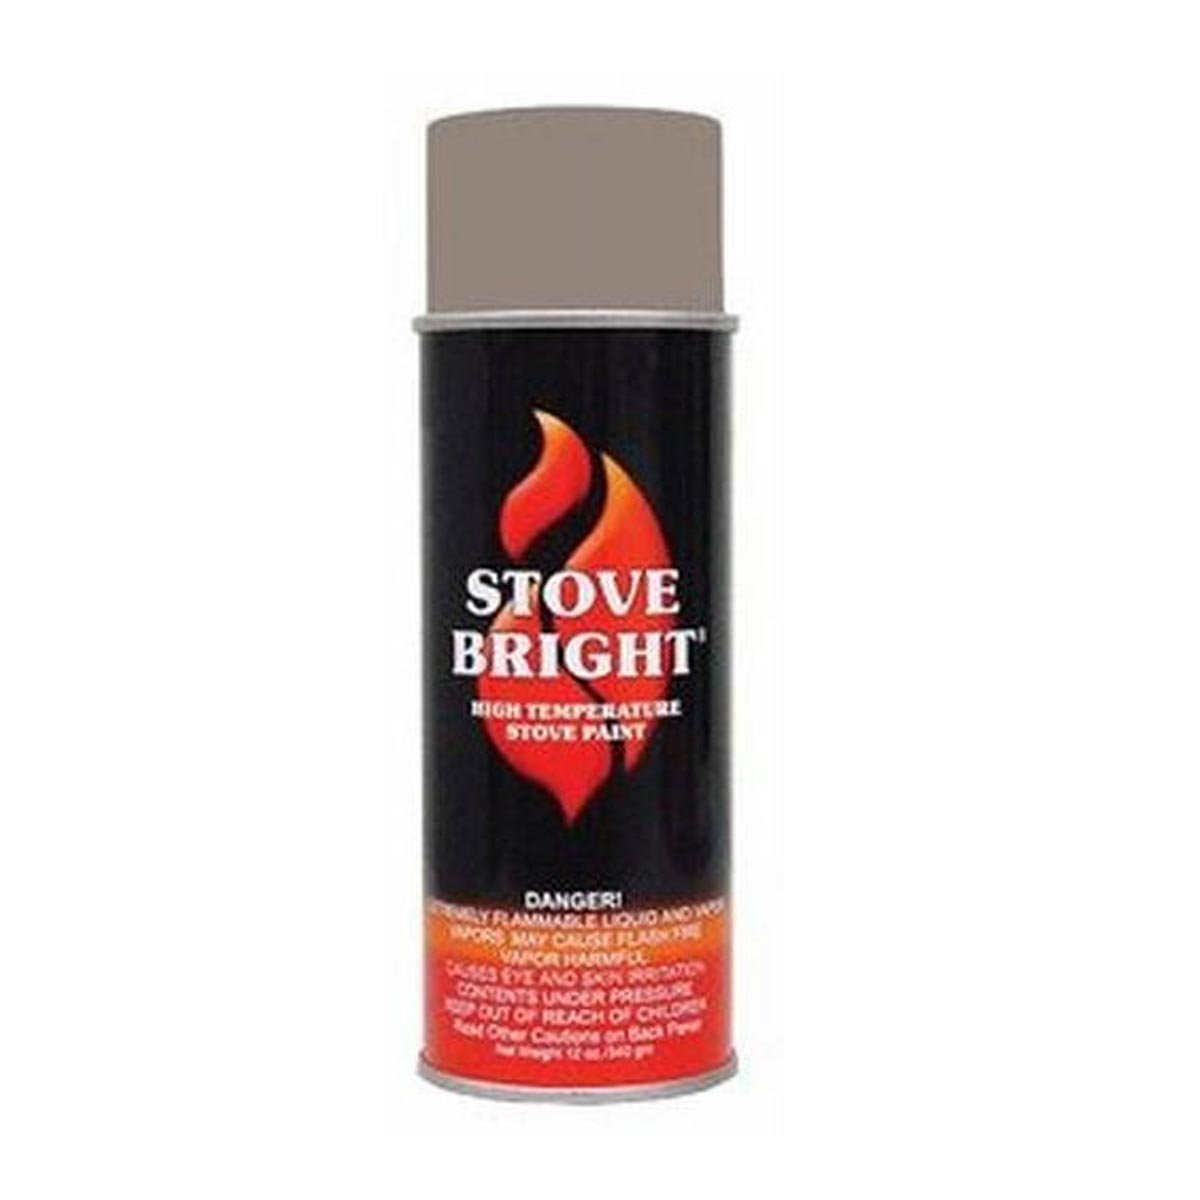 Stove Bright High Temp Paint - New Bronze by Stove Bright